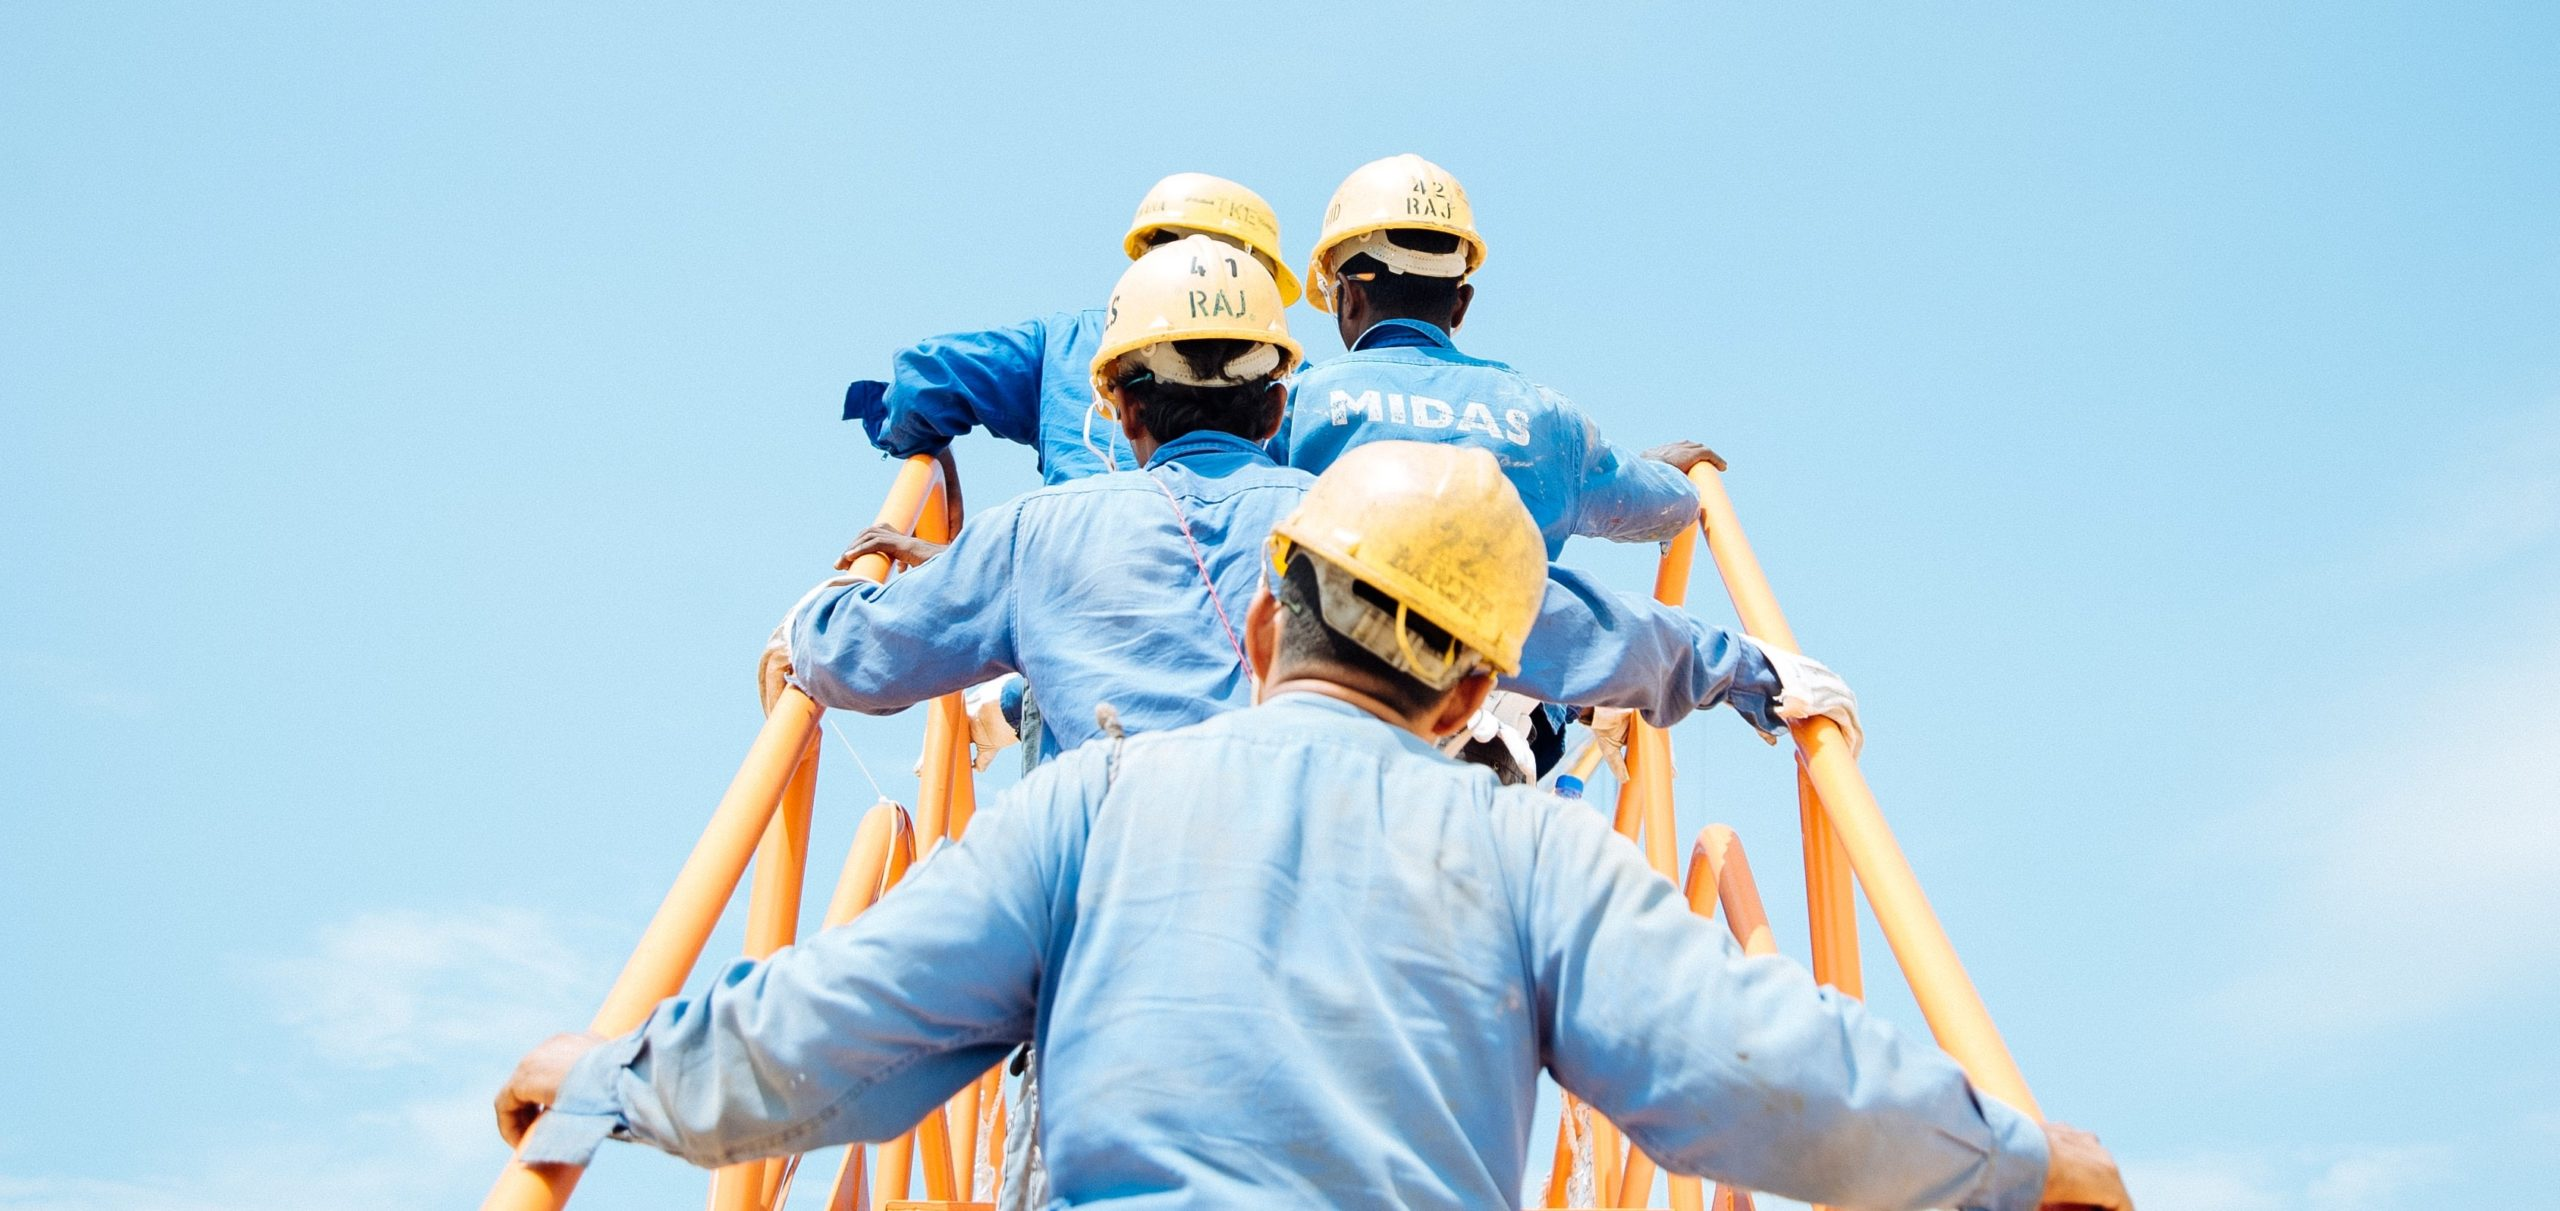 middle skills workers climbing stairs featured image